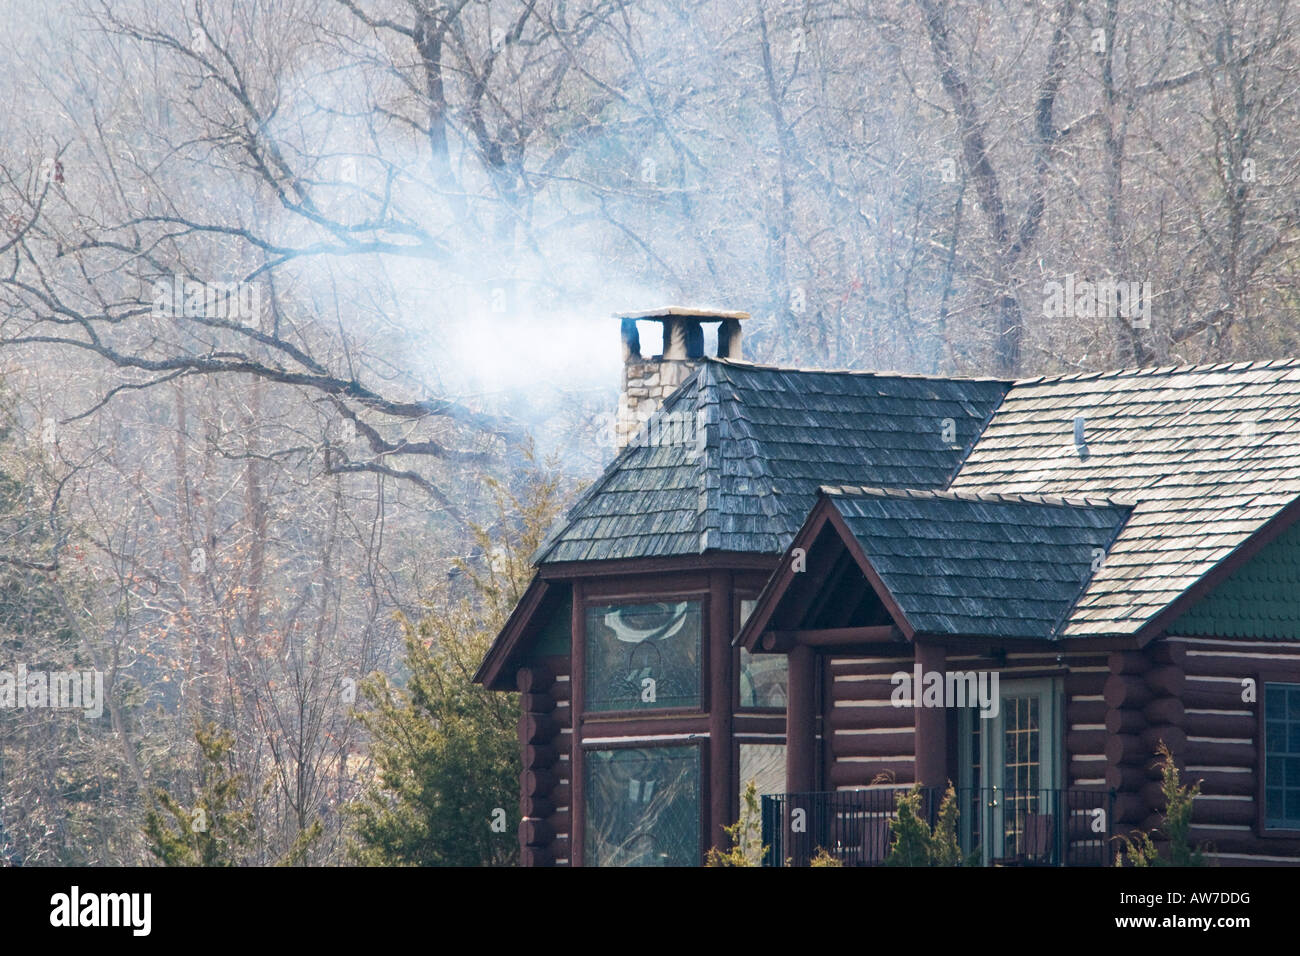 A Log Cabin Rental Located In A Resort Area Of Branson